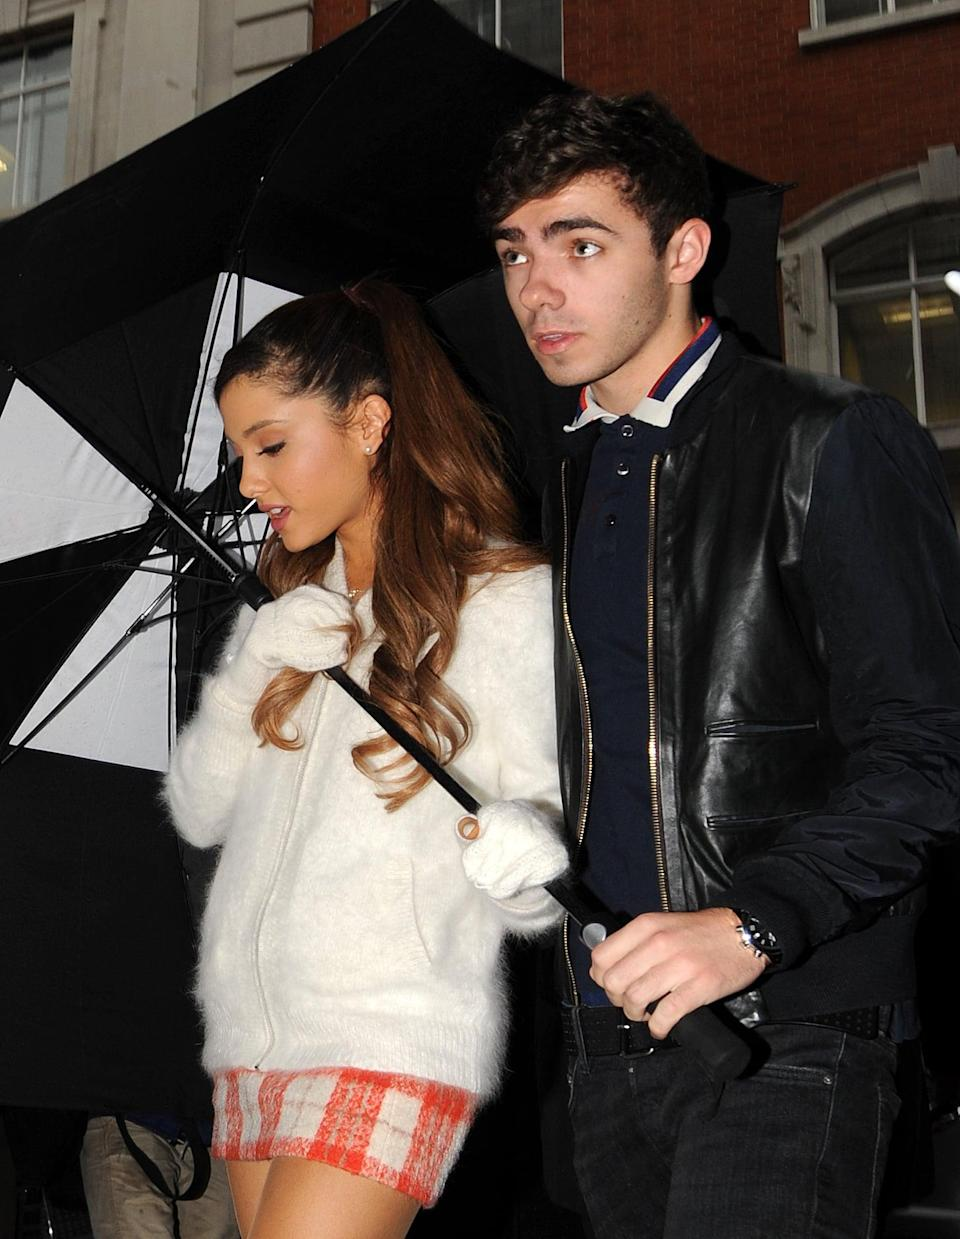 """<p><a href=""""https://www.usmagazine.com/celebrity-news/news/ariana-grande-and-nathan-sykes-confirm-their-coupledom-2013259/"""" class=""""link rapid-noclick-resp"""" rel=""""nofollow noopener"""" target=""""_blank"""" data-ylk=""""slk:Ariana moved on with The Wanted singer"""">Ariana moved on with The Wanted singer</a> shortly after, and the two dated for four months in 2013. The couple even collaborated on Ariana's song """"Almost Is Never Enough."""" It's unclear what went wrong, but in February 2014, Ariana confirmed in an interview that <a href=""""https://www.j-14.com/posts/ariana-grande-and-nathan-sykes-breakup-rumors-confirmed-19433/photos/ariana-grande-and-nathan-sykes-cute-moments-1-17694"""" class=""""link rapid-noclick-resp"""" rel=""""nofollow noopener"""" target=""""_blank"""" data-ylk=""""slk:they had split"""">they had split</a>. """"We broke up a little while ago, but he's a really good friend,"""" Ariana said. """"He's so talented. I am so glad to have met him and have a friend like him in my life. He's an amazing person. It was very civil. It was mutual."""" In 2016, they collaborated again, only this time it was for <a href=""""https://www.youtube.com/watch?v=7uJ4kJiMUAc"""" class=""""link rapid-noclick-resp"""" rel=""""nofollow noopener"""" target=""""_blank"""" data-ylk=""""slk:Nathan's song"""">Nathan's song</a> """"Over and Over Again.""""</p>"""